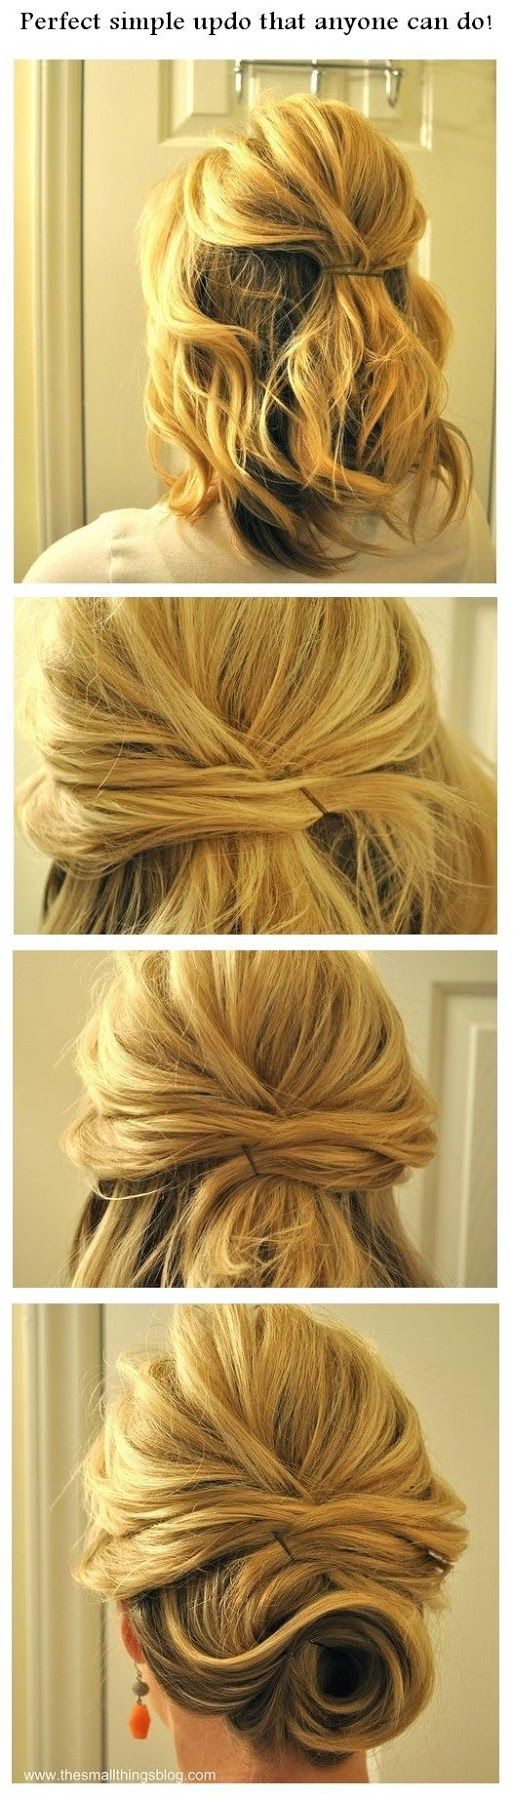 I need good wedding hair i can do myself for an upcoming blacktie